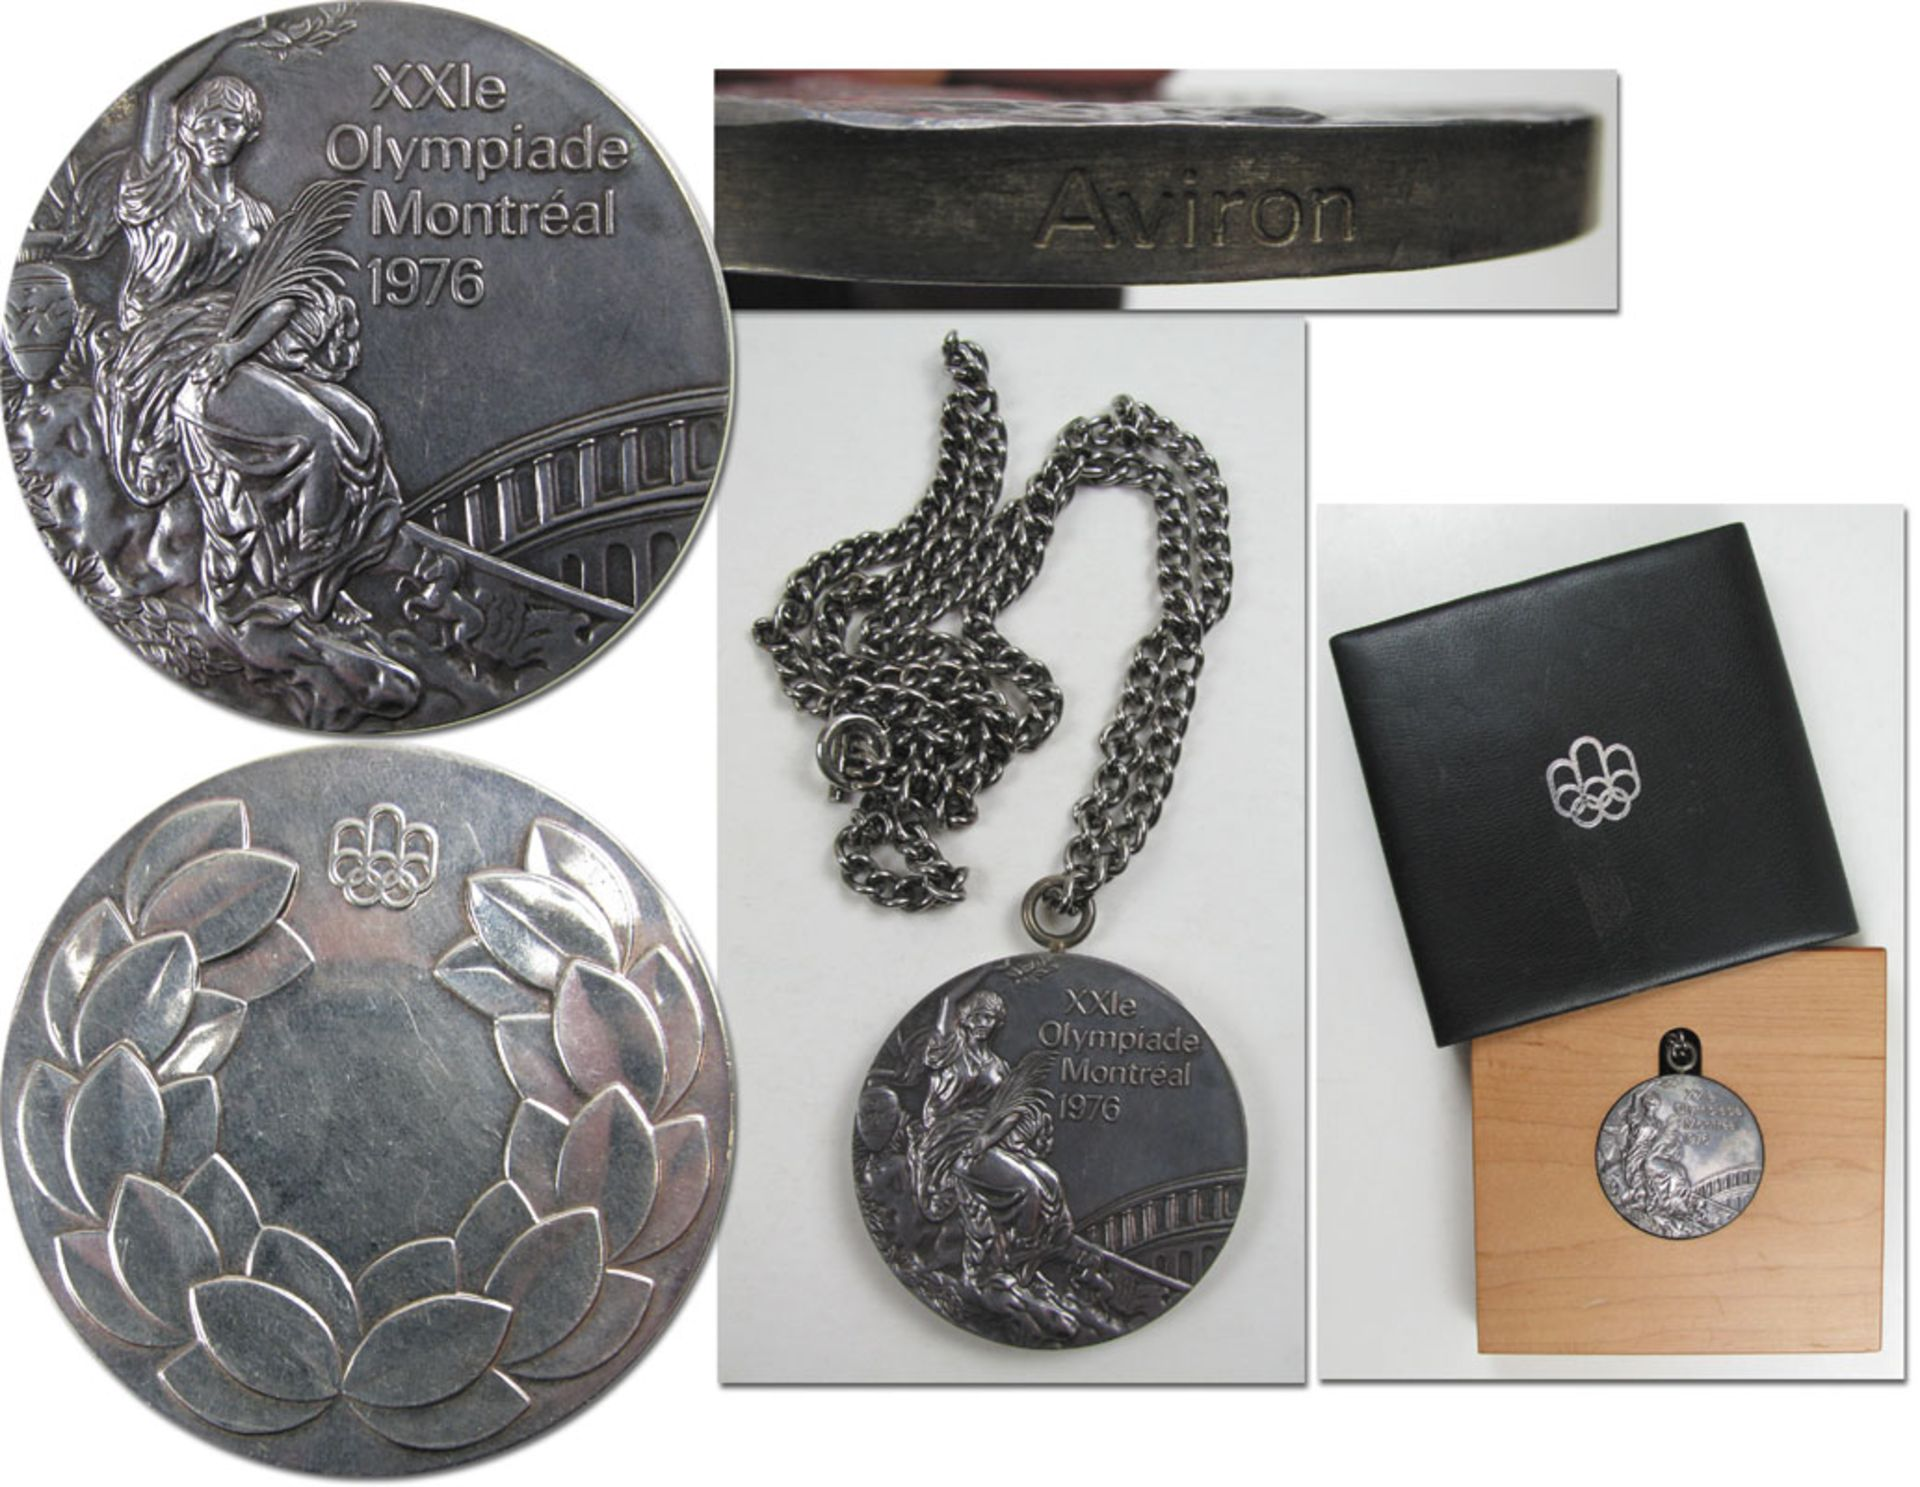 Olympic Games Montral 1976. Silver Winner's medal - Original silver medal from the Olympic Games in  - Image 2 of 2